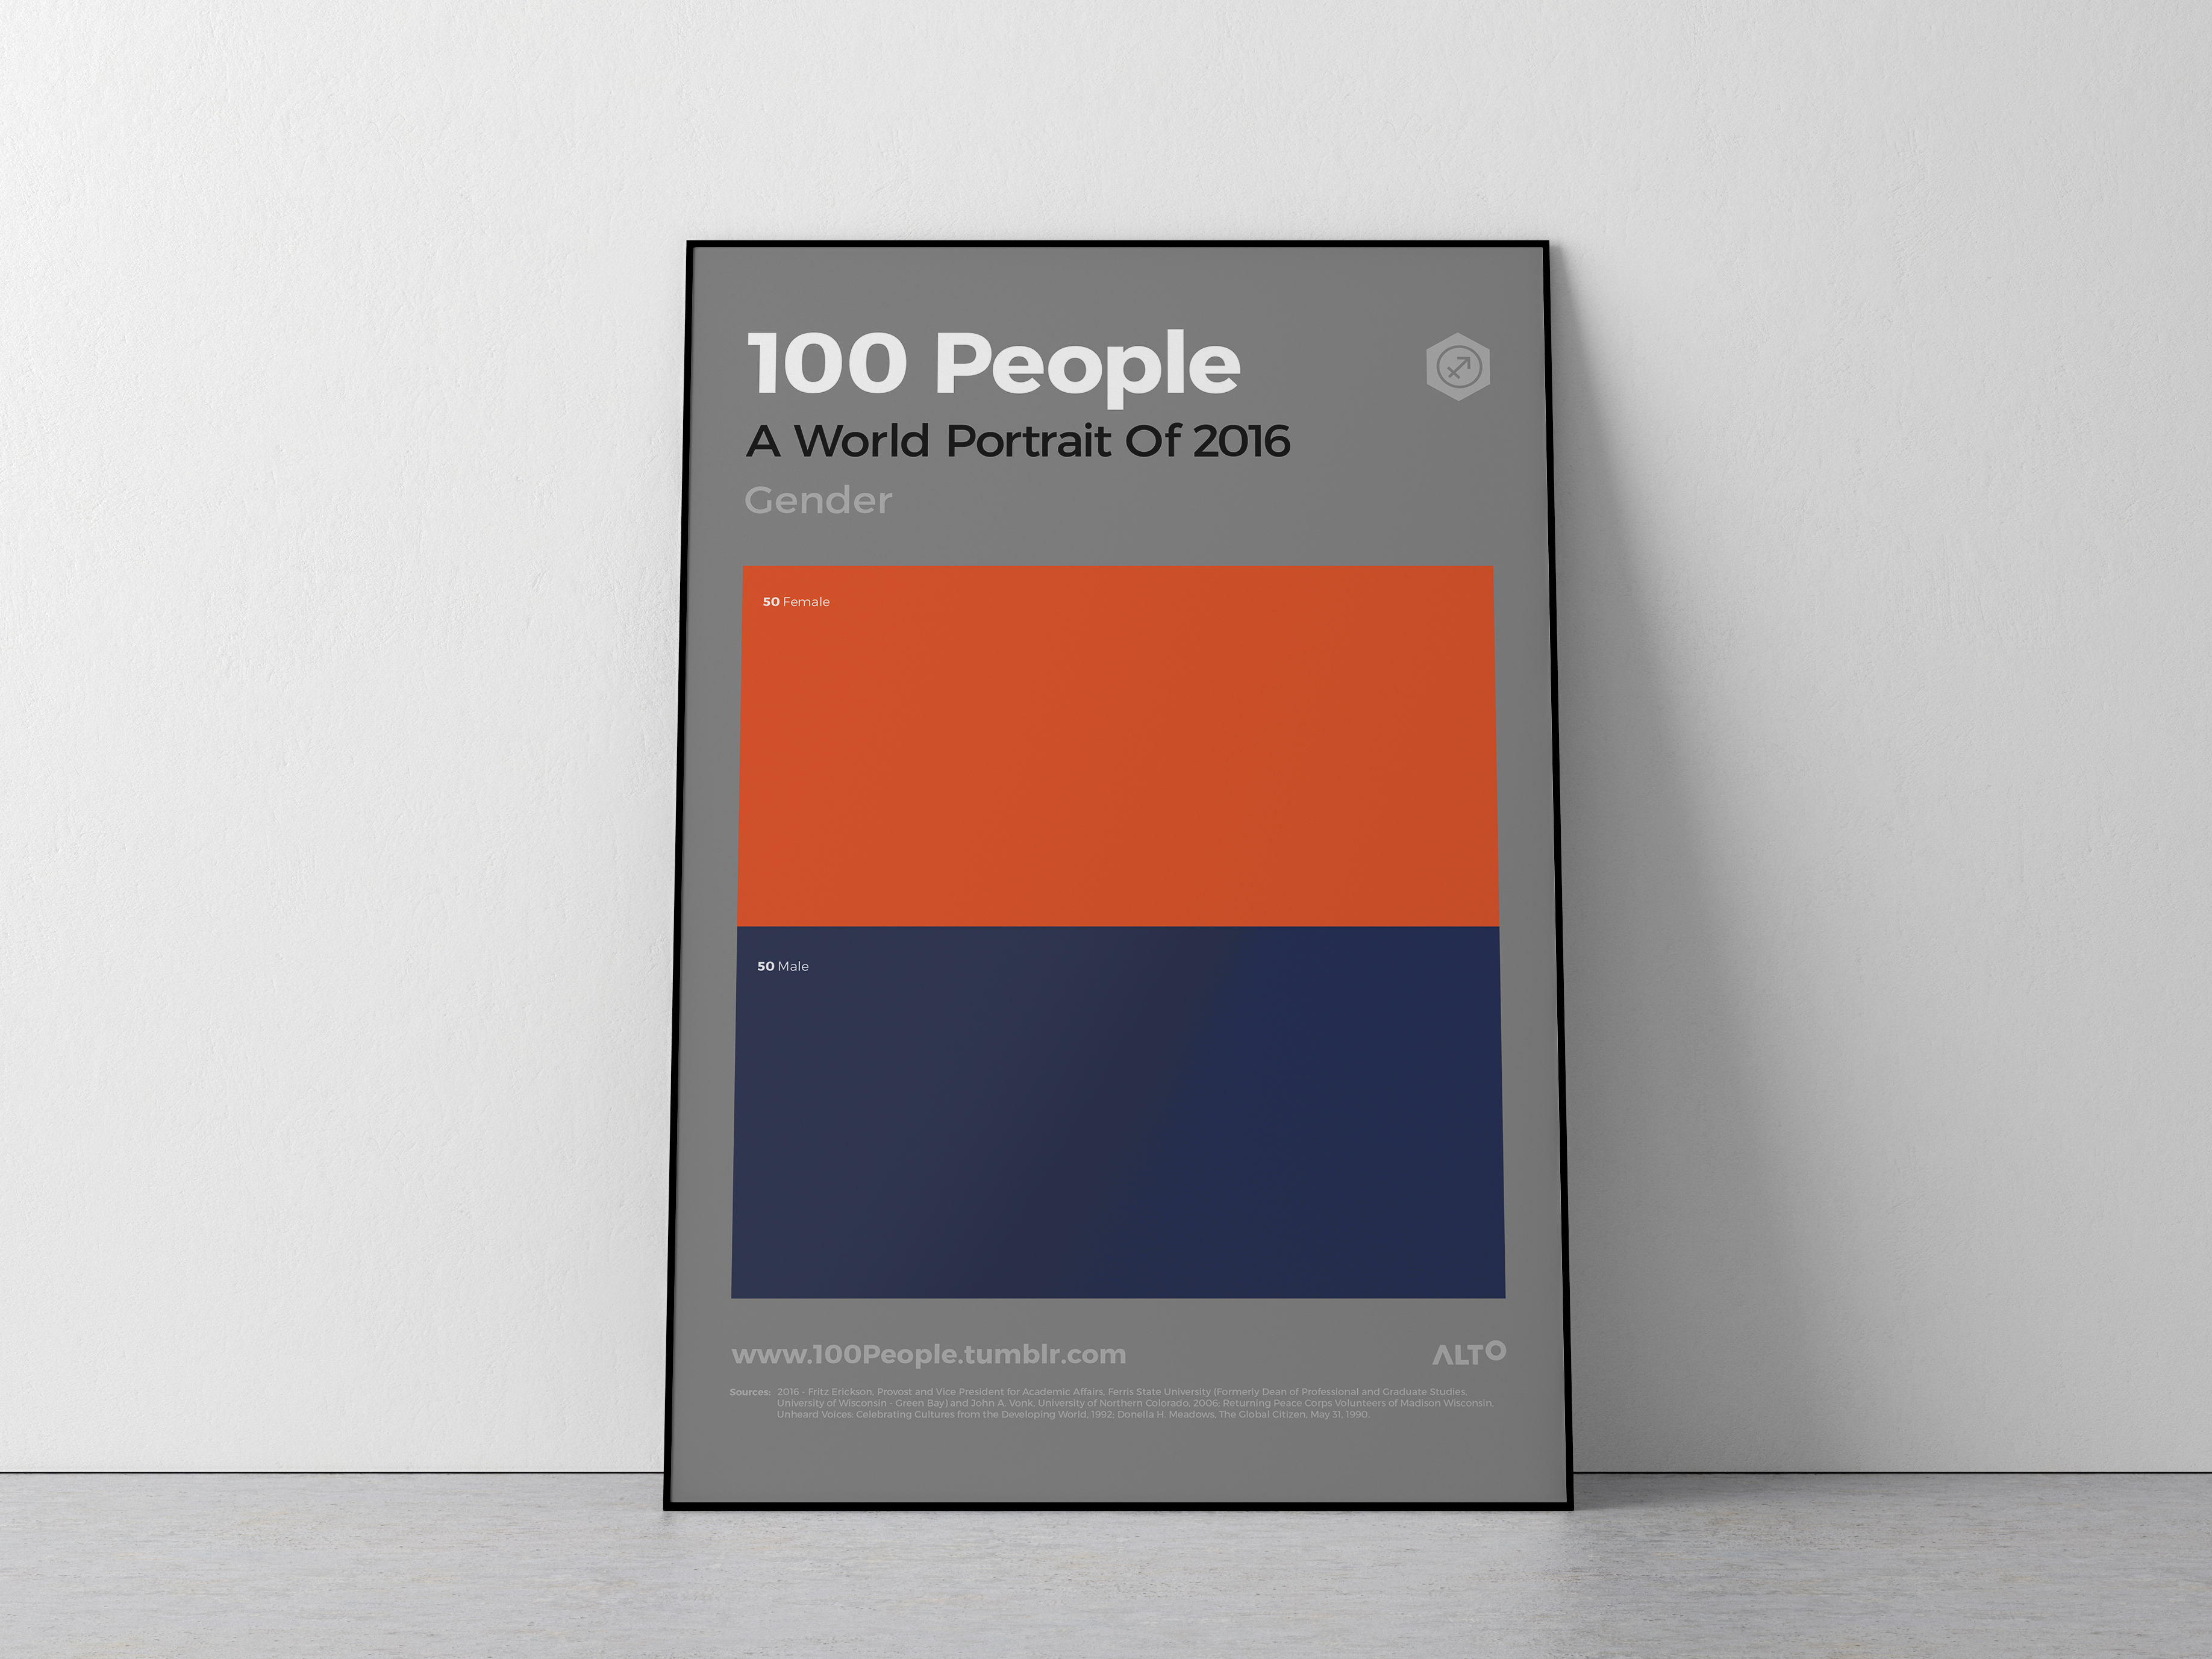 100 people poster. Equality